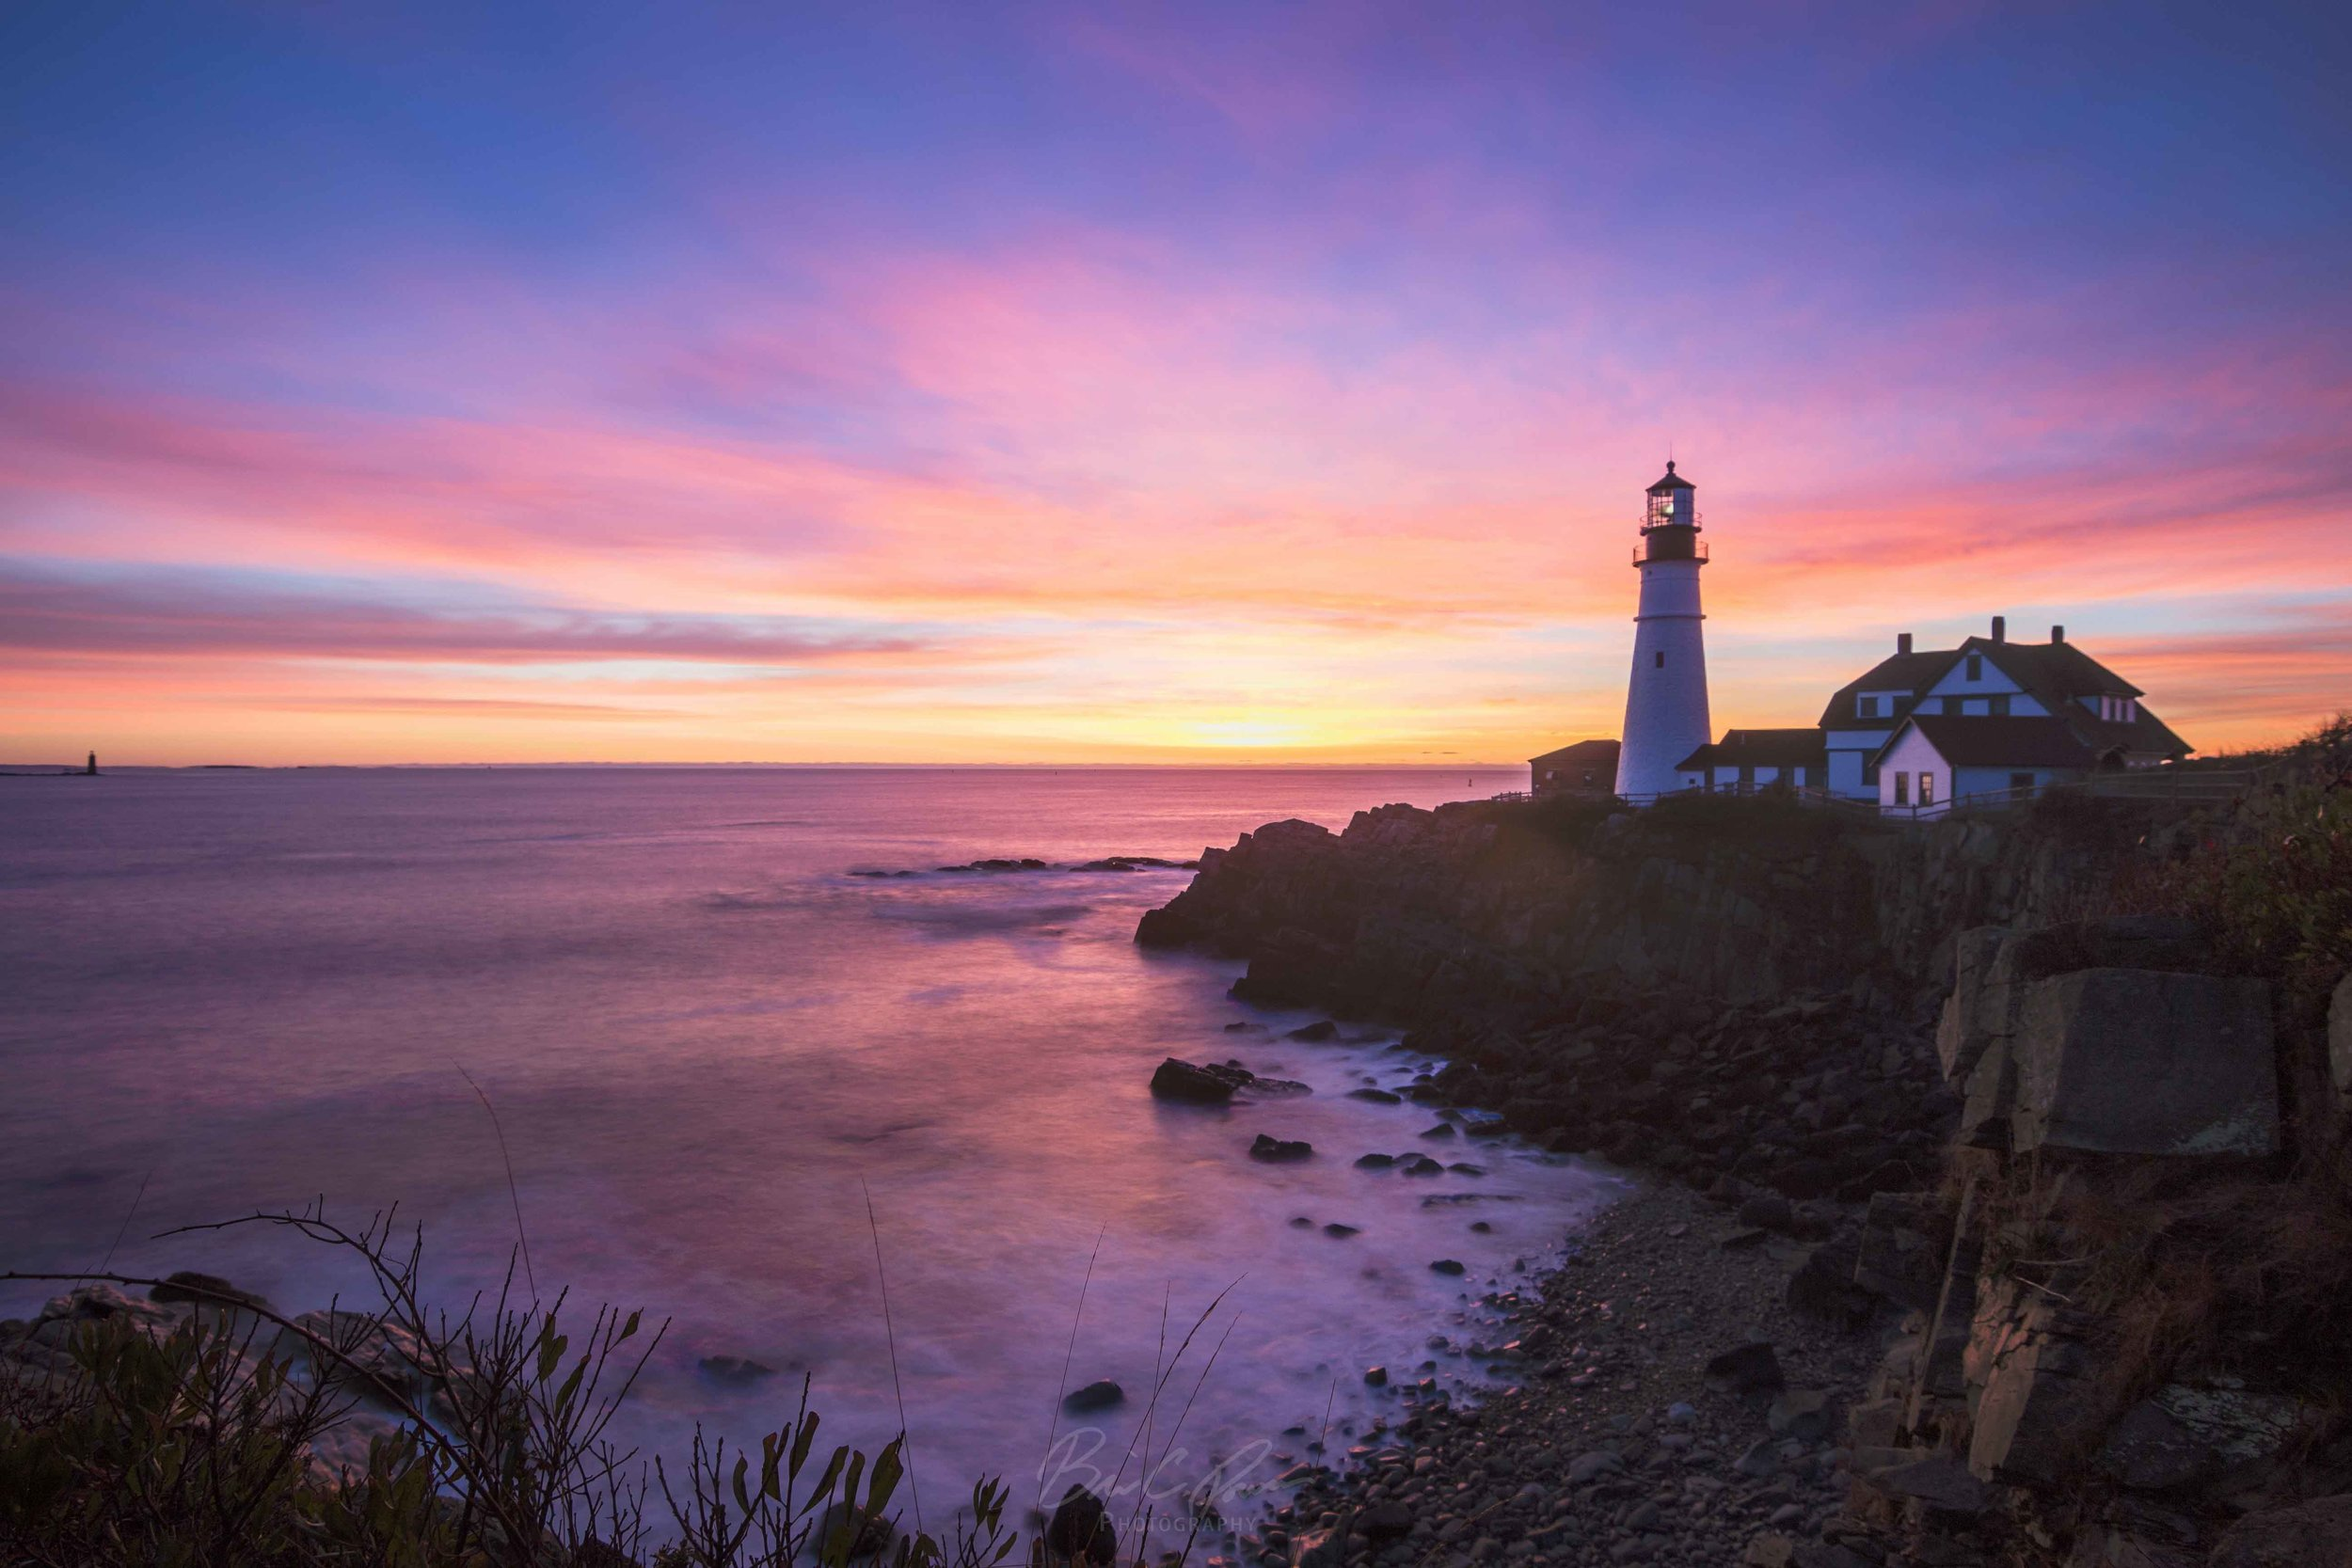 Purple Sky at Portland Head Light at Fort Williams Park in Cape Elizabeth, Maine